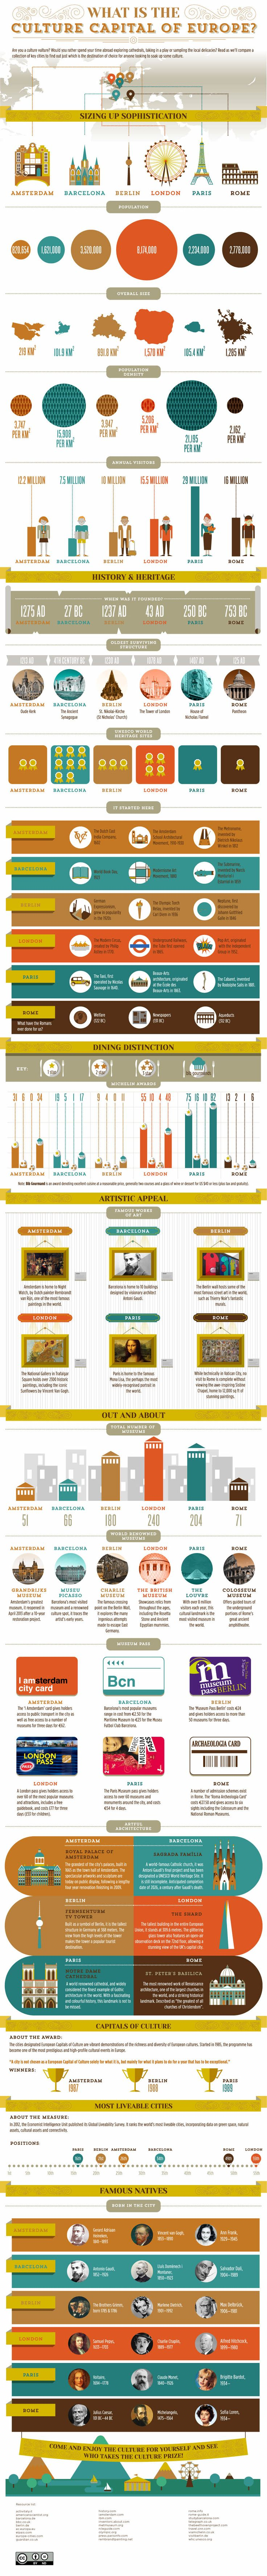 Which City is Europe's Cultural Capital? (Infographic)